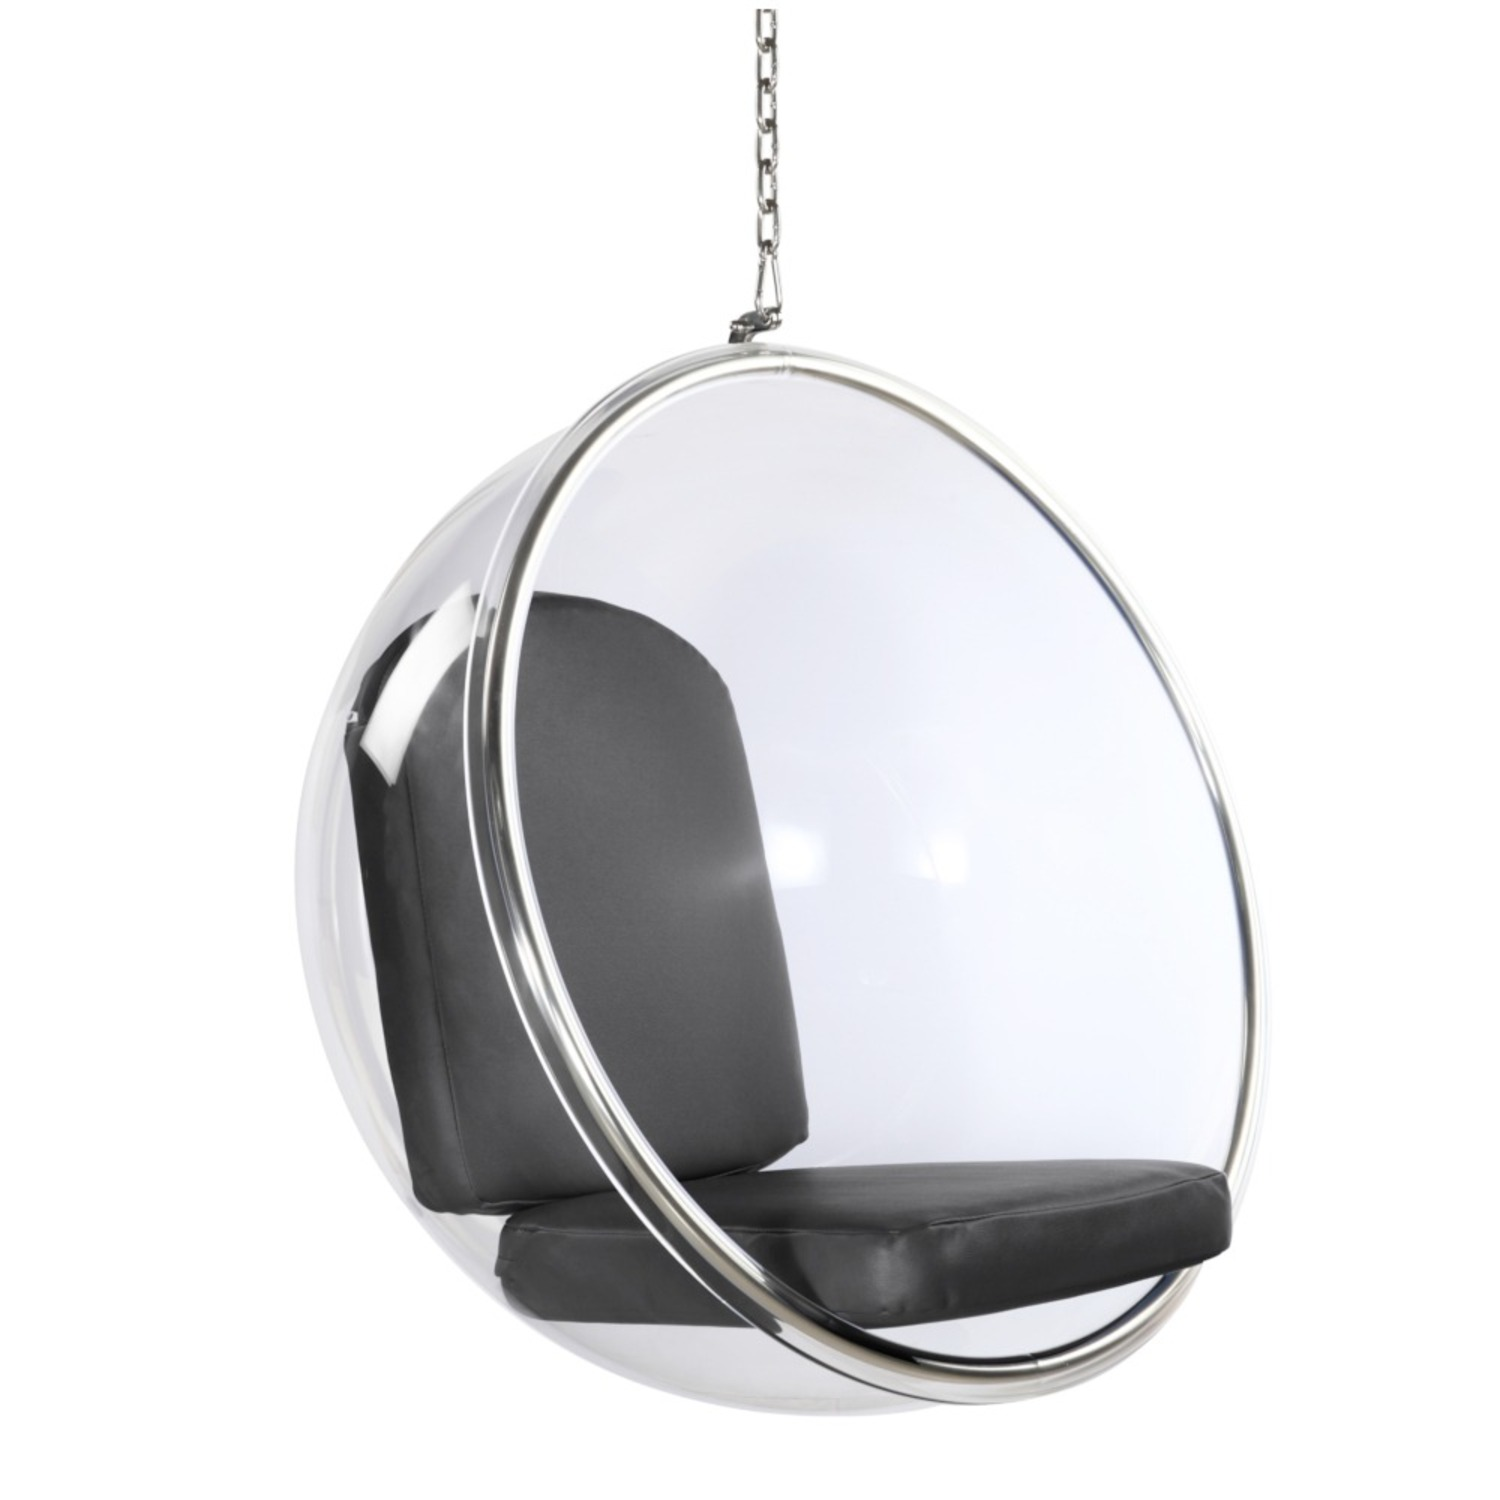 Hanging Chair In Clear Acrylic & Gray PU Leather - image-0